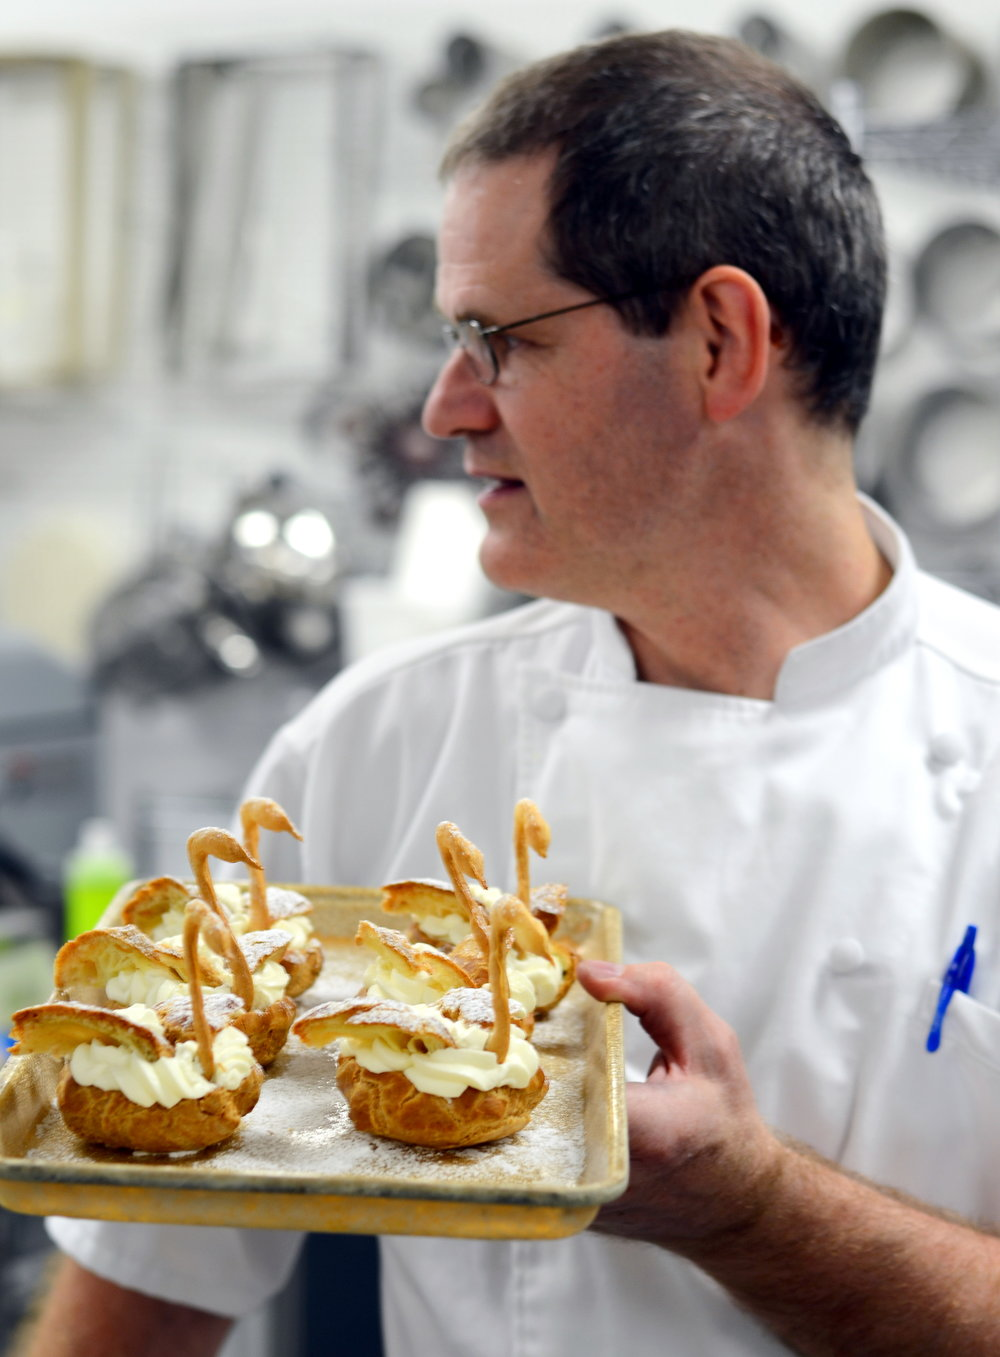 Executive Chef Tony Holden